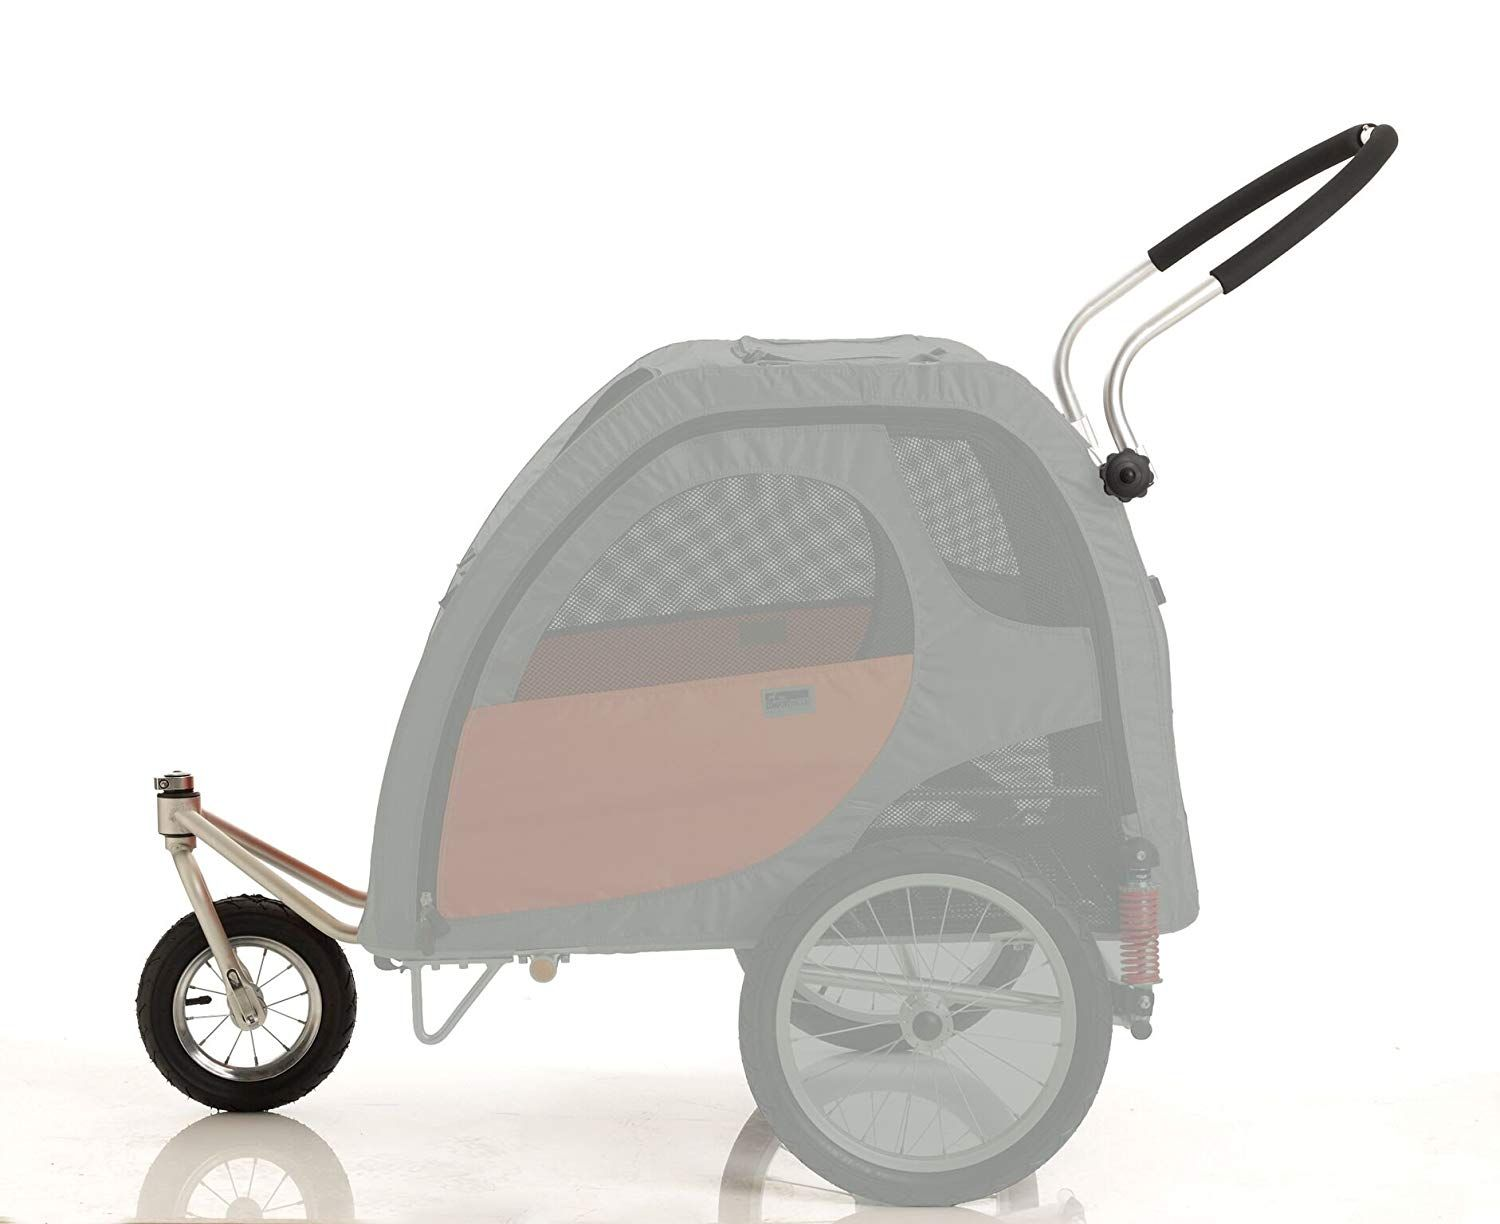 Petego Stroller Conversion Kit for Comfort Wagon Pet Bicycle Trailer